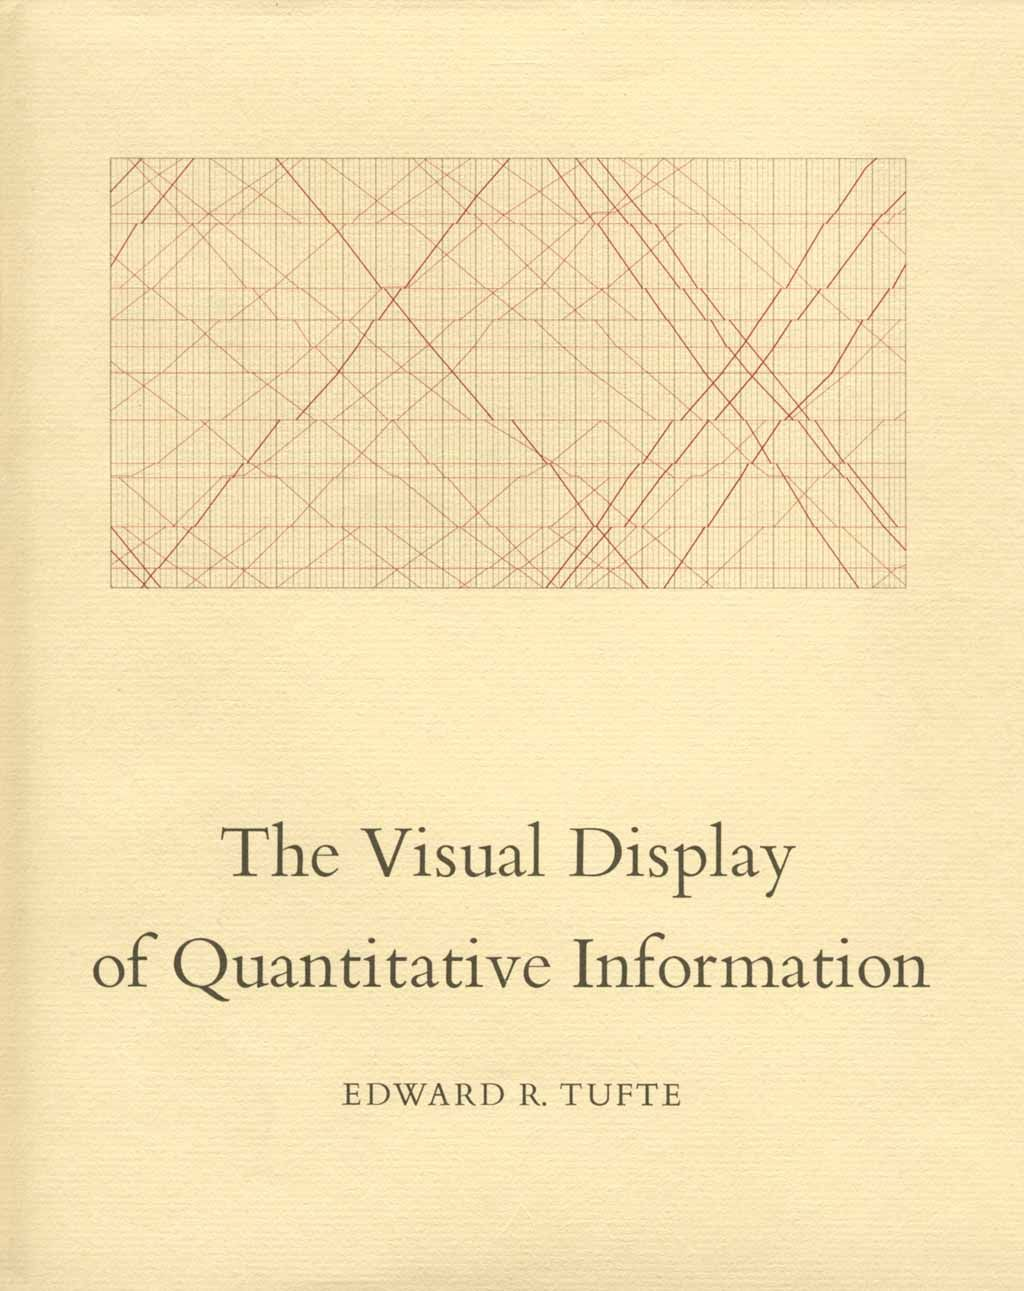 Book: The Visual Display of Quantitative Information by Edward R. Tufte